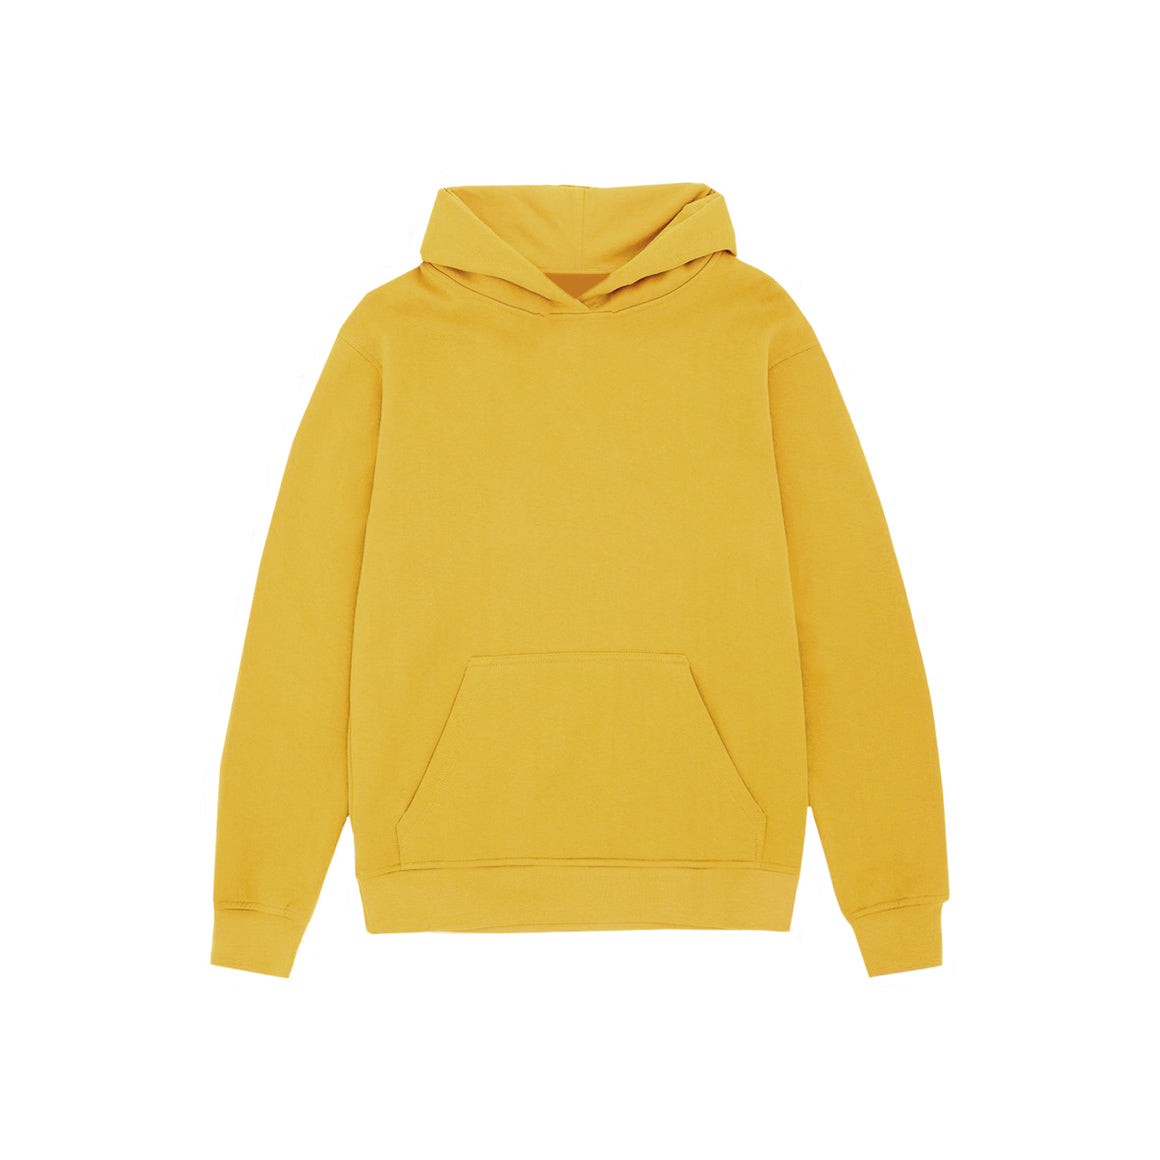 UNBRANDED ESSENTIAL PULLOVER HOODY | GOLD MUSTARD